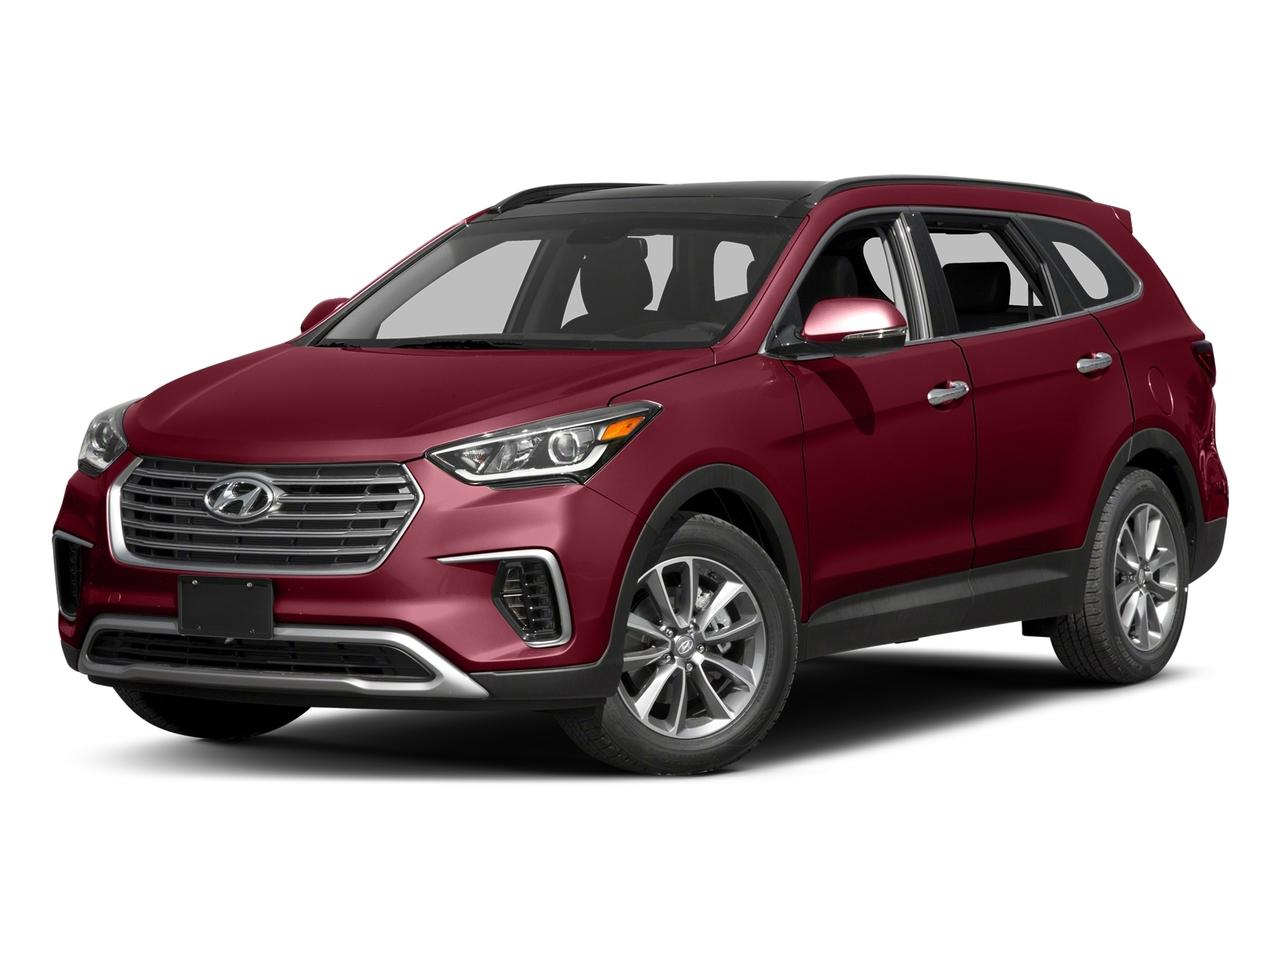 2017 Hyundai Santa Fe Vehicle Photo in Quakertown, PA 18951